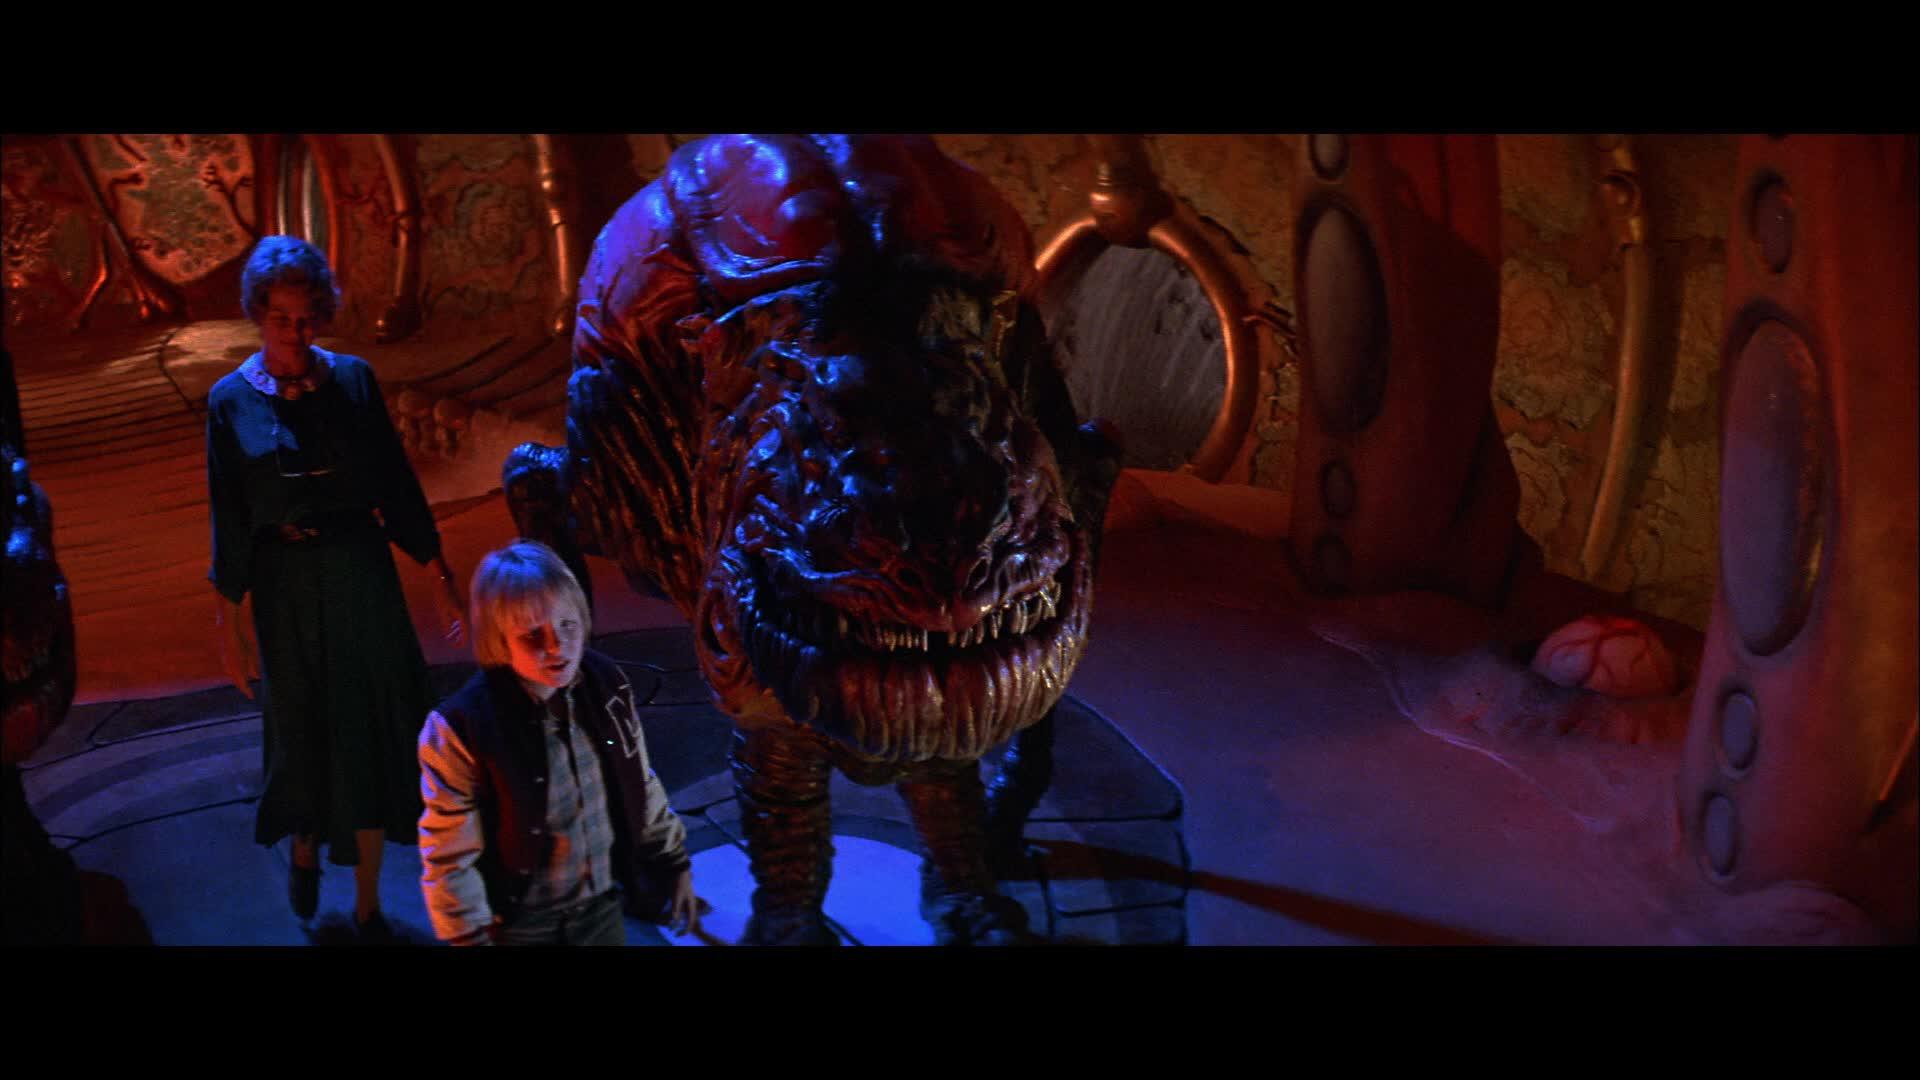 Invaders from Mars (1986) (US Blu-ray review)